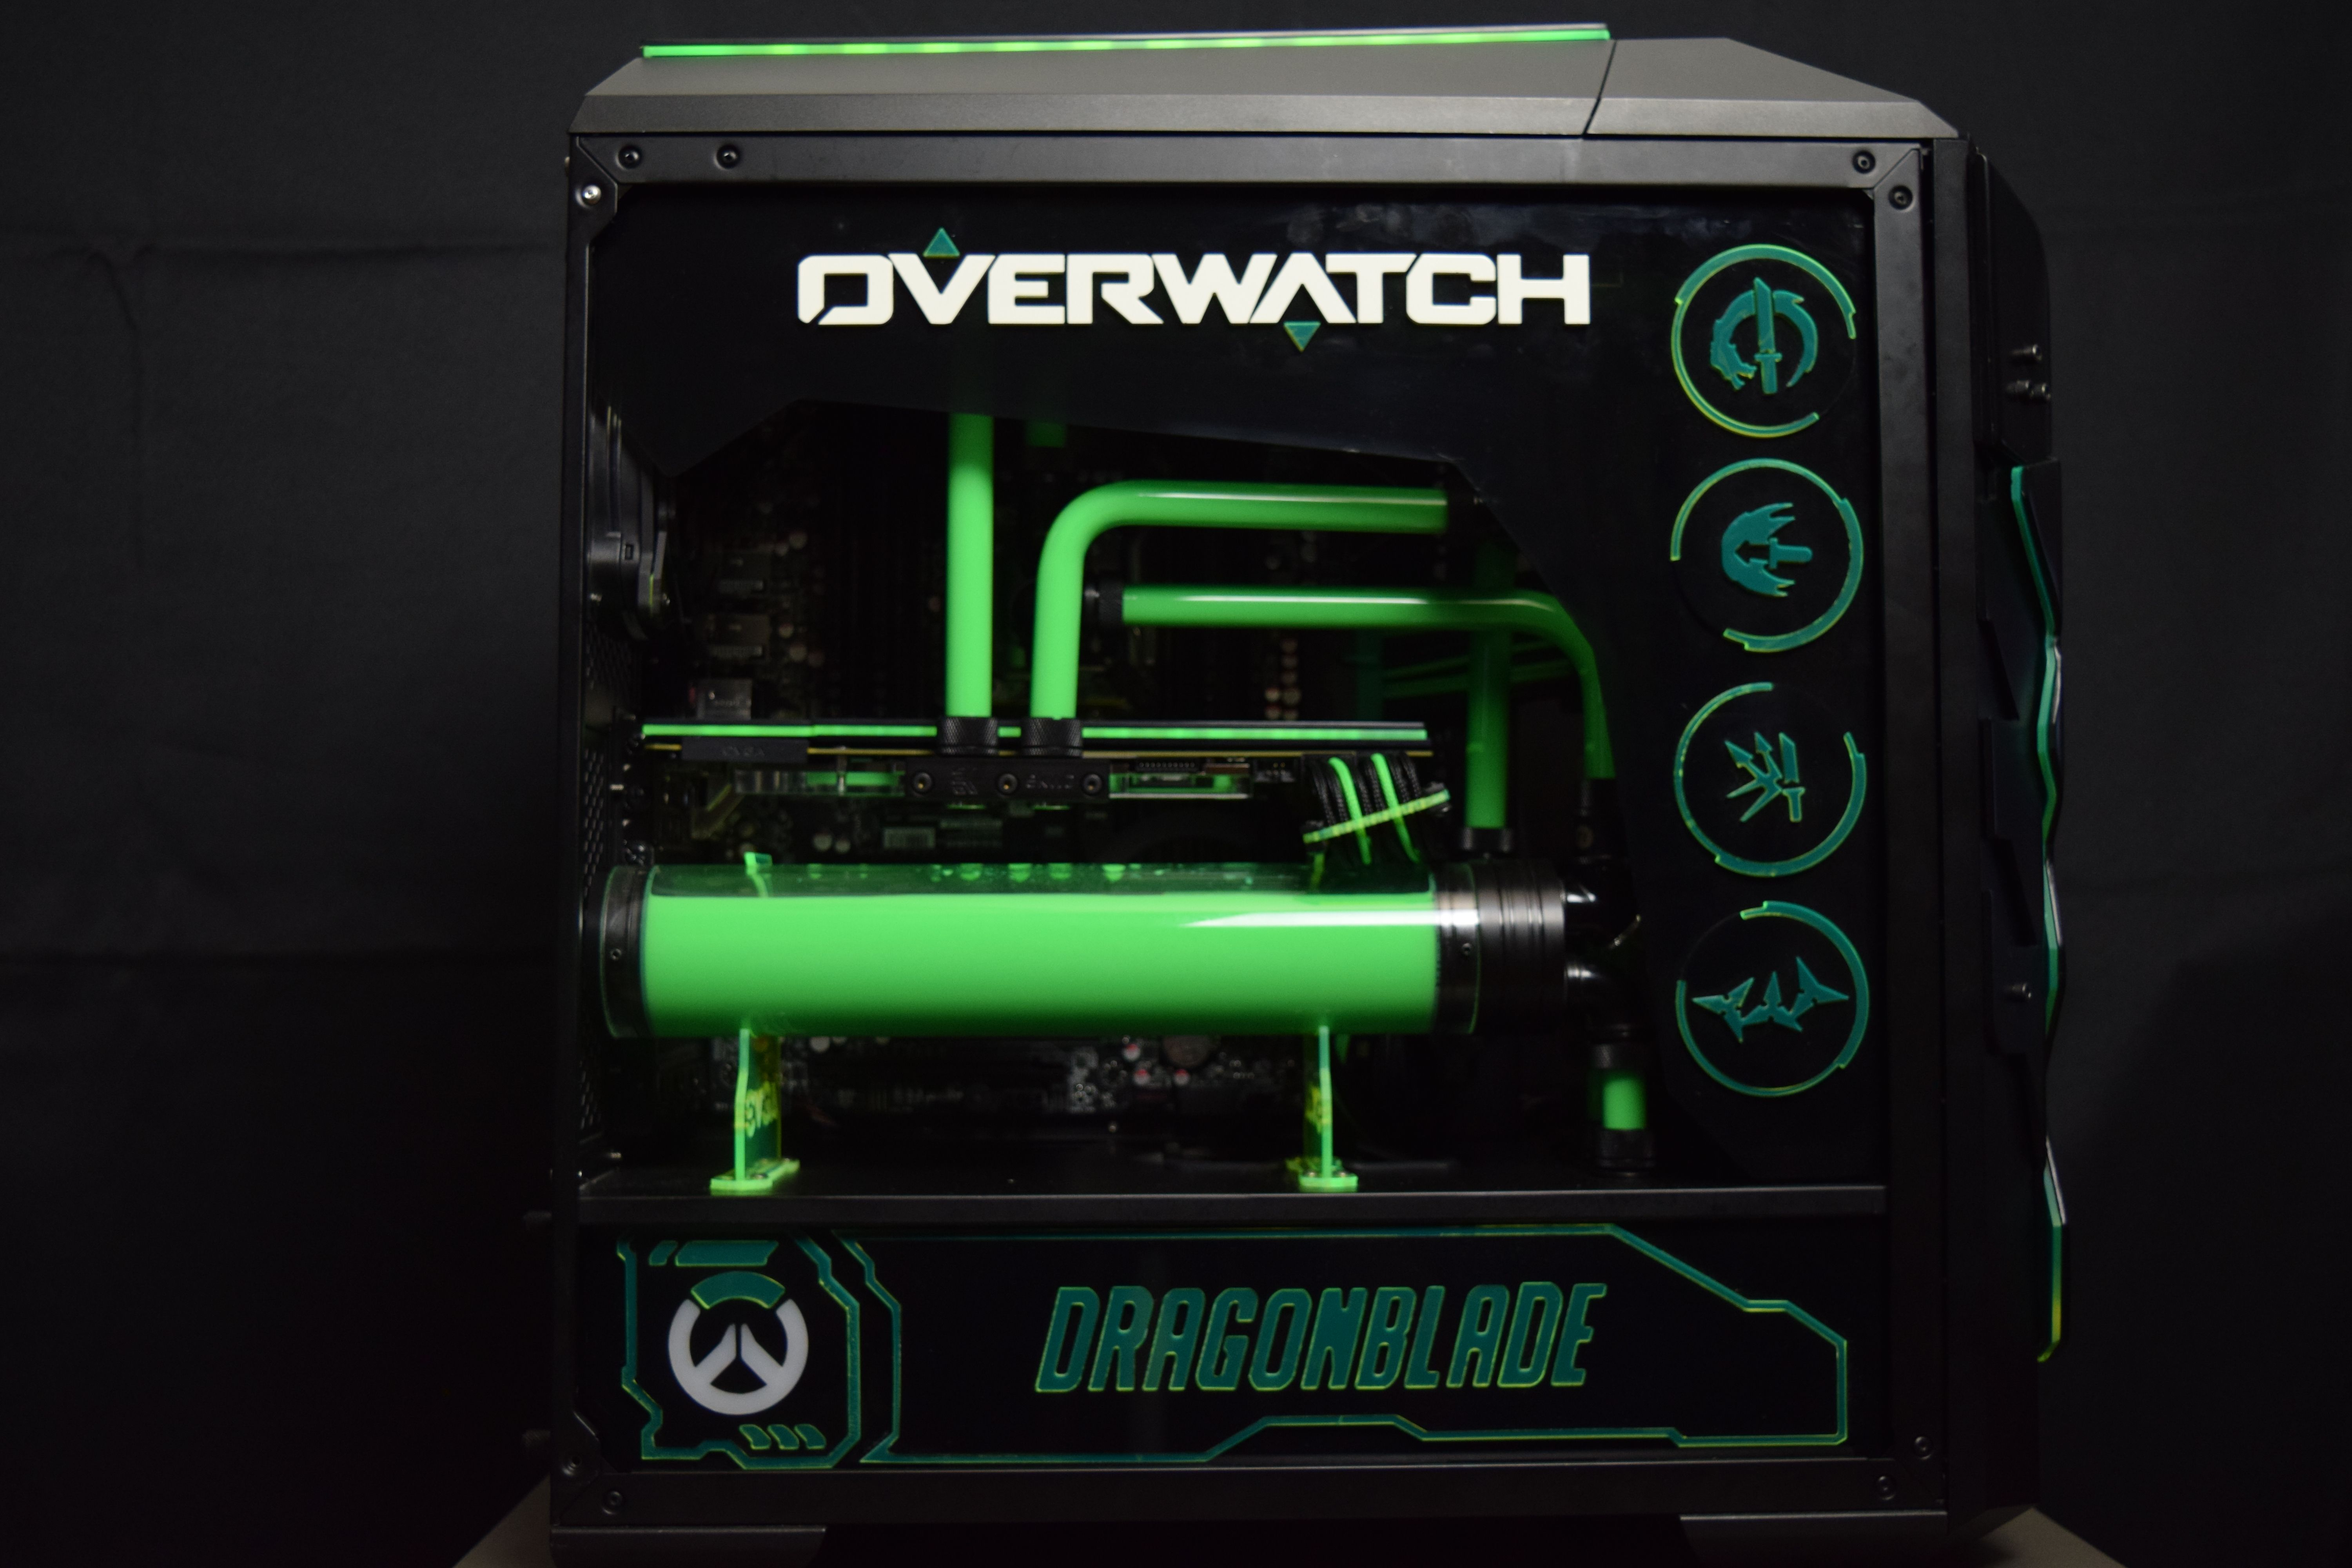 Overwatch Inspired Case Mod Is Using A Mastercase Pro 5 This Diy Tower Pc Mod Is A Great Example Of How Liquid Coo Cooler Master Diy Computer Case Tower Games